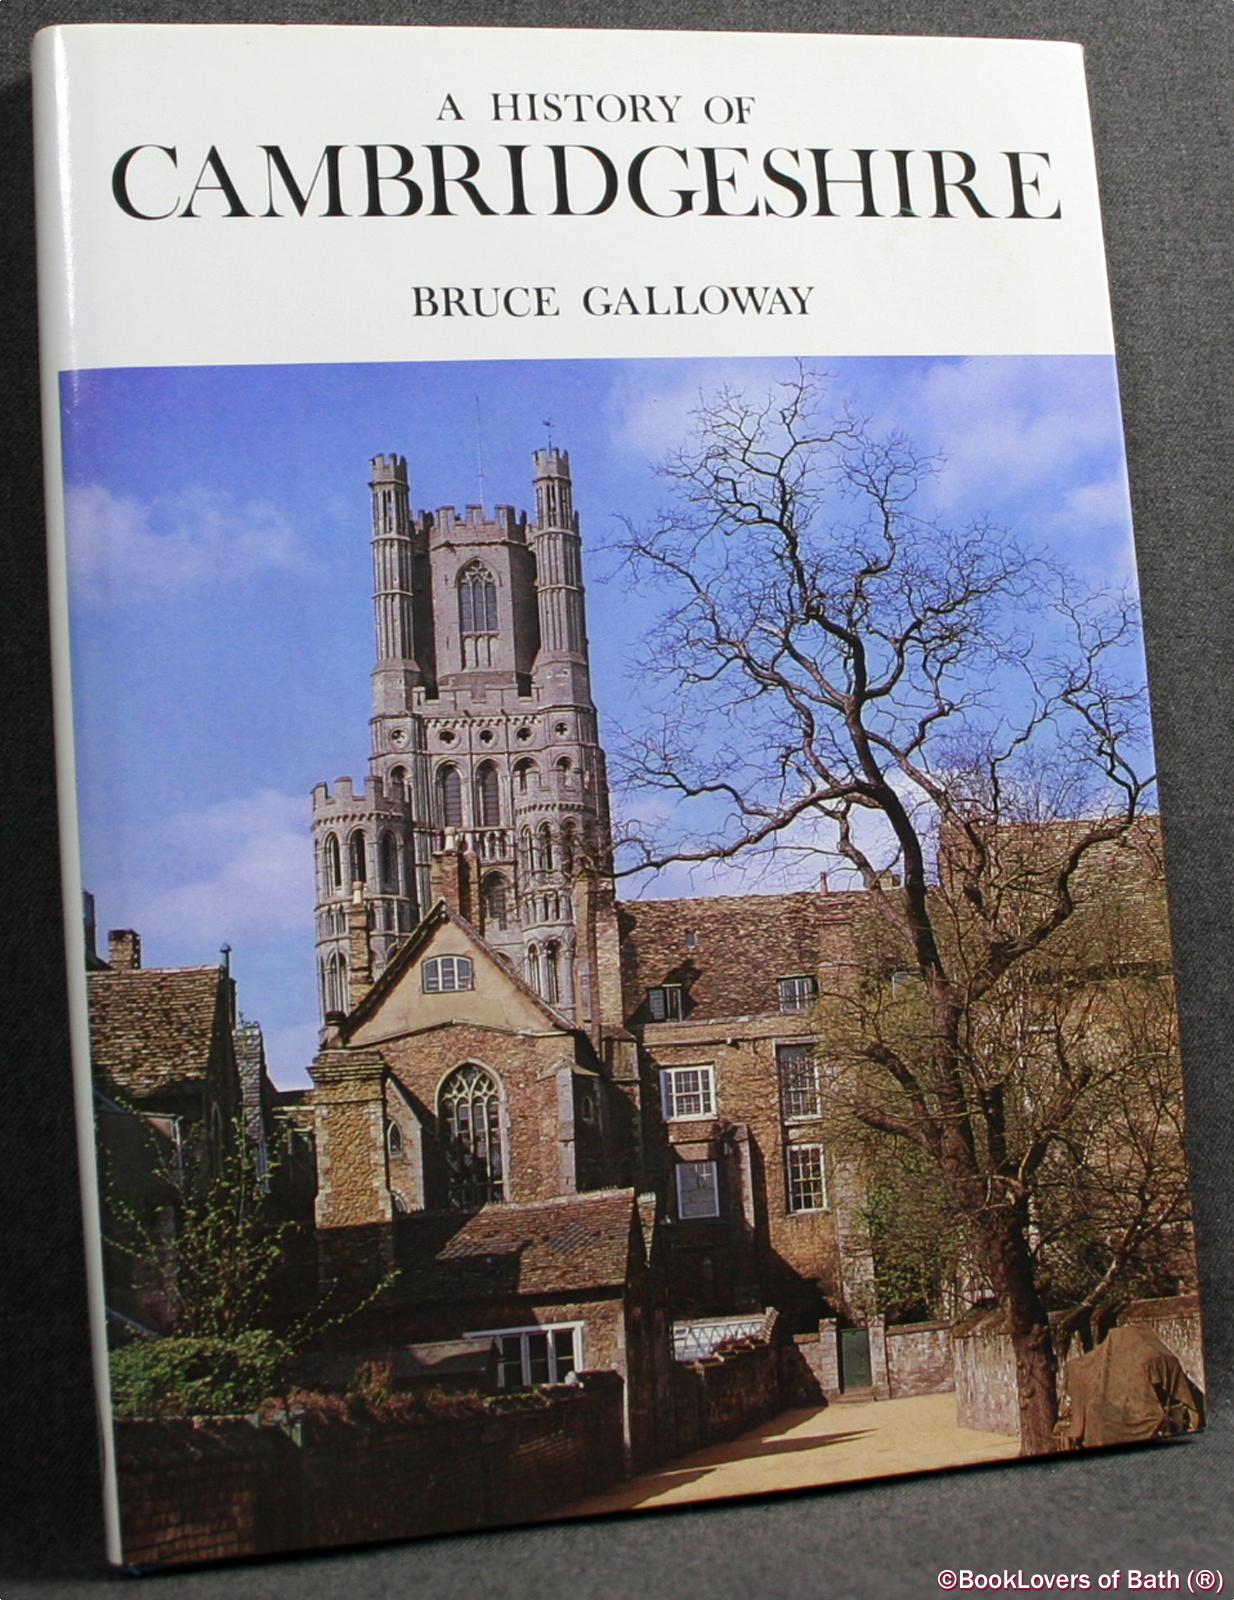 A History of Cambridgeshire - Bruce Galloway